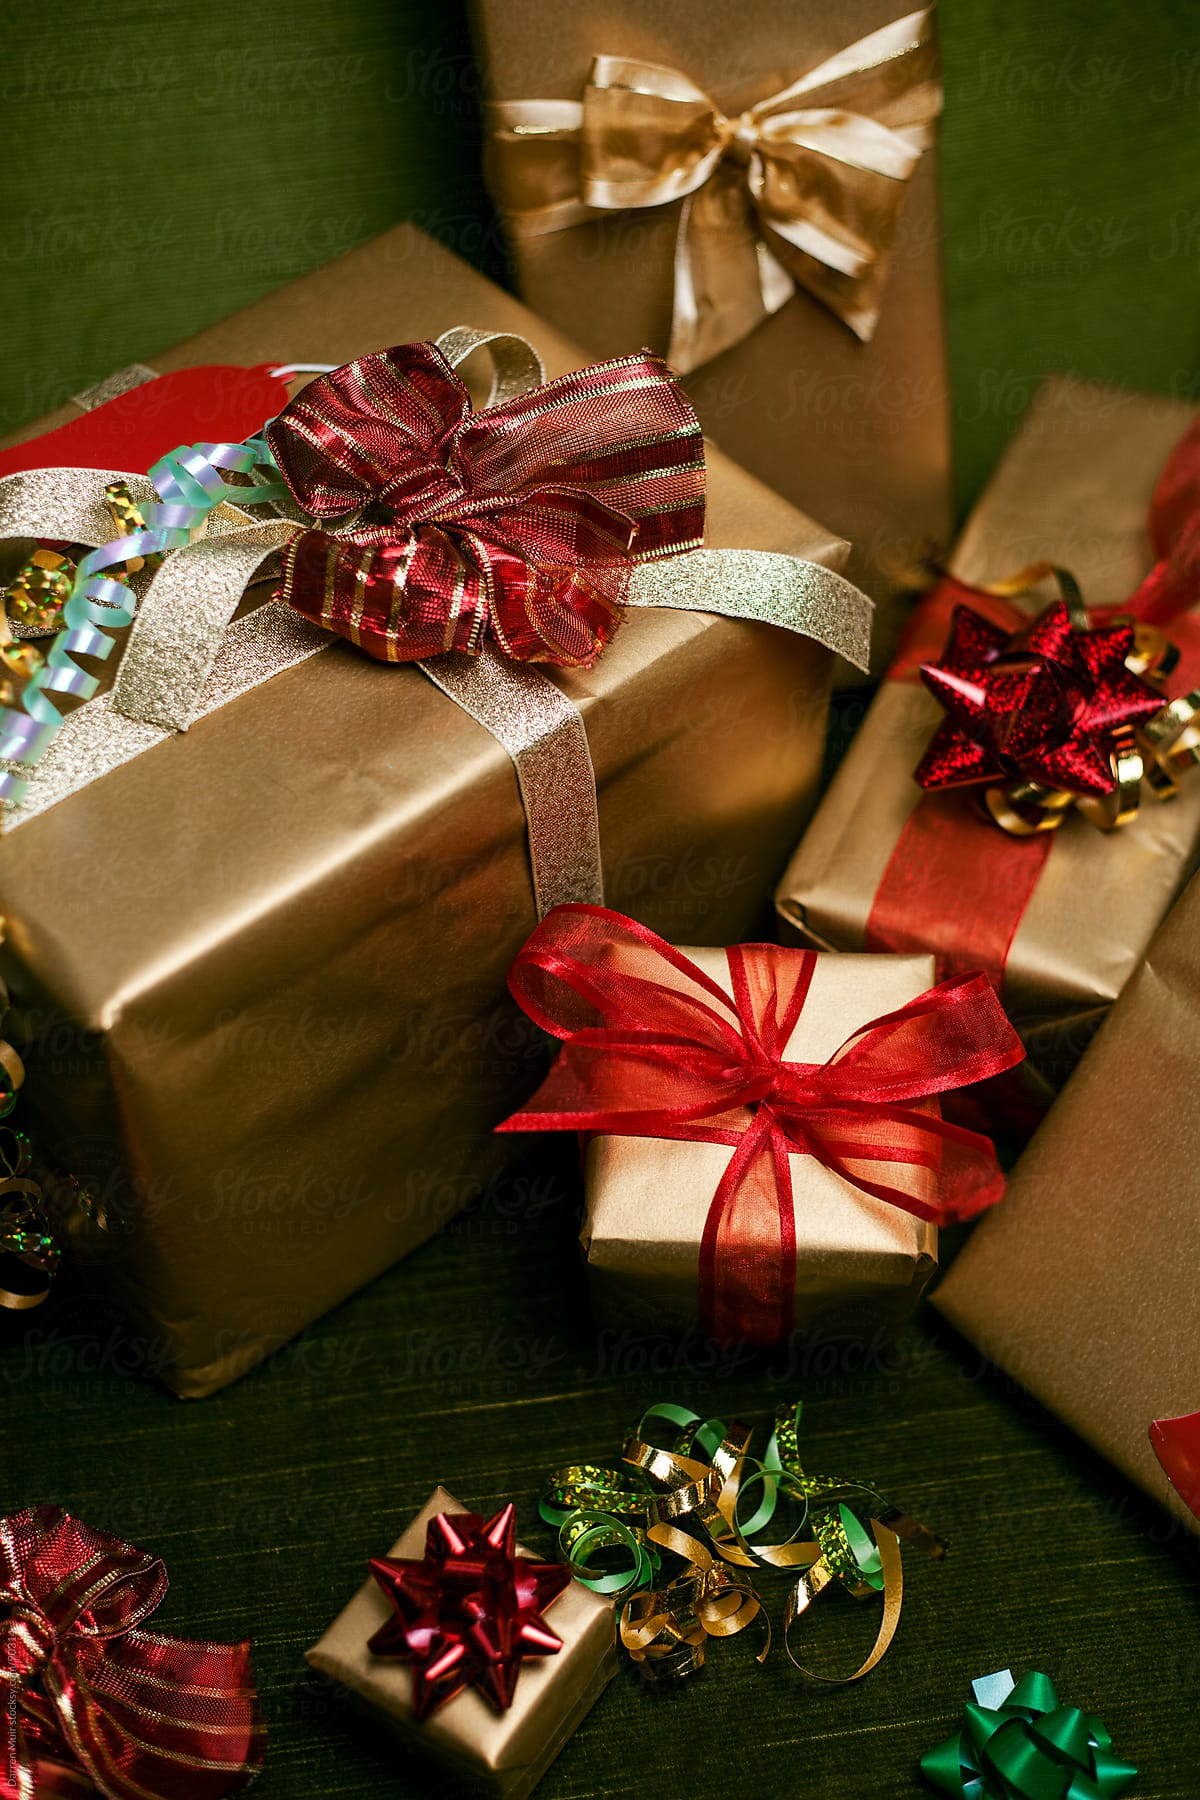 Christmas Presents Gift Wrapped | Stocksy United